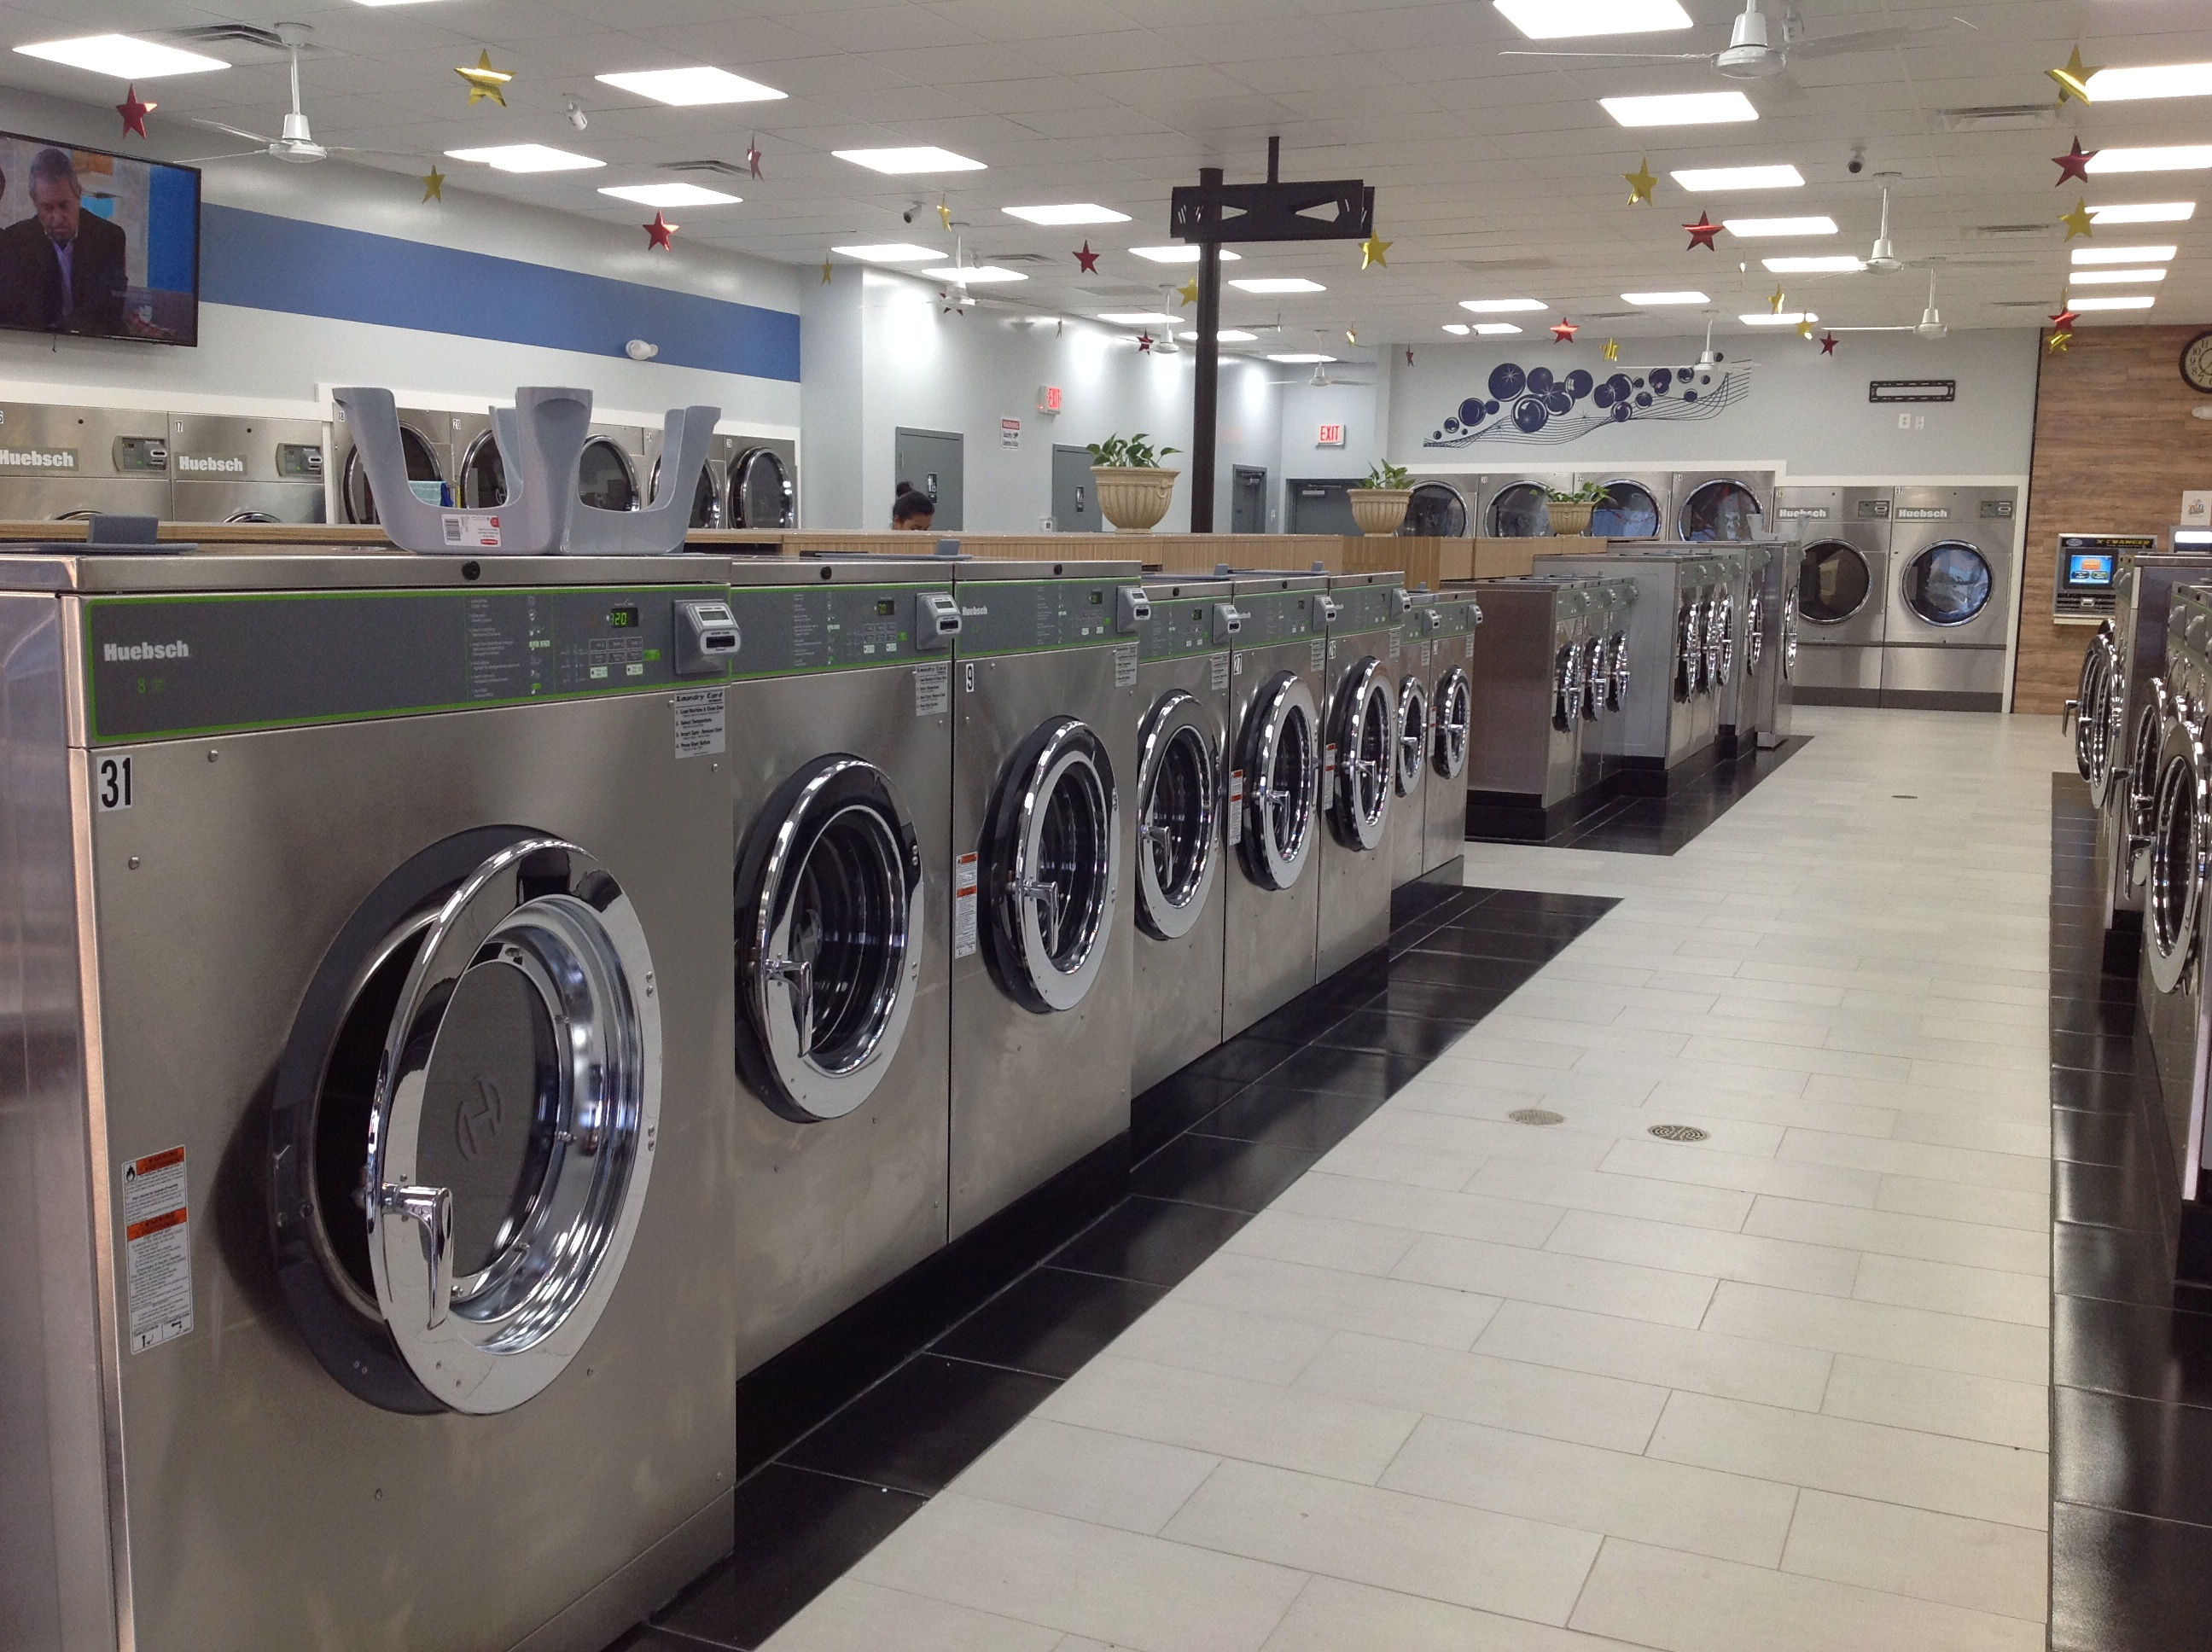 Stars Laundromat Overview2